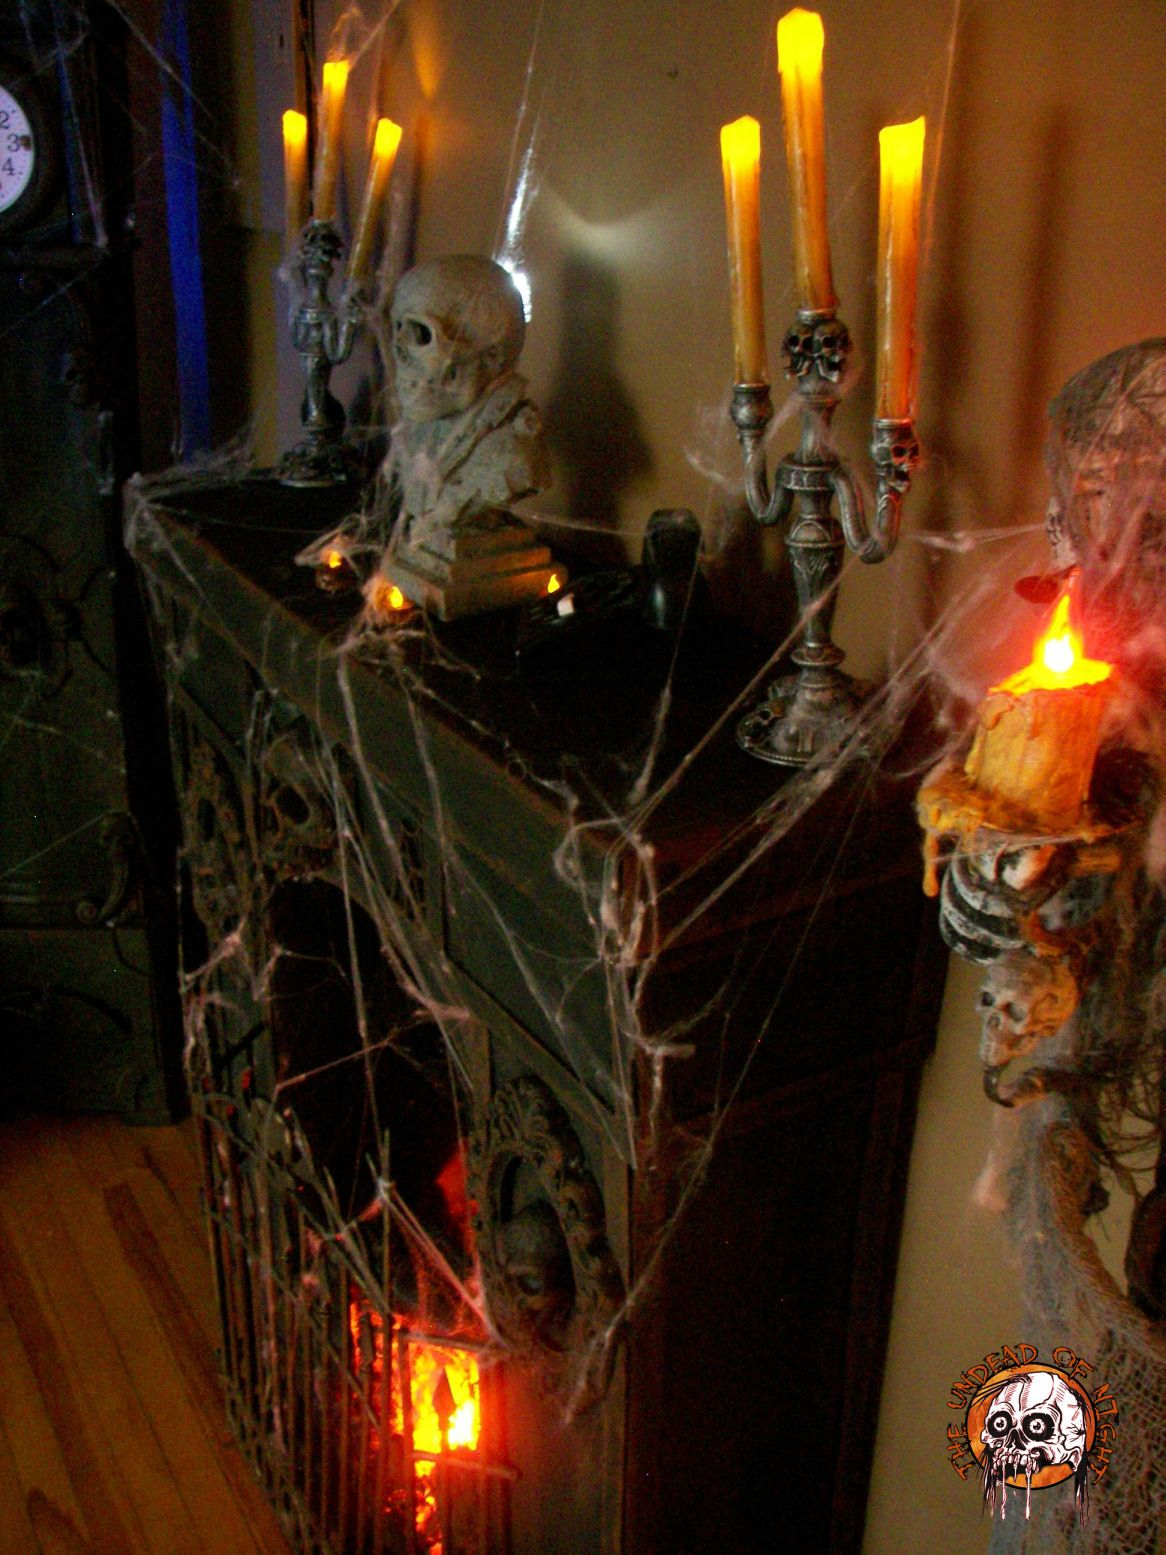 Cardboard fireplace side view    wwwhalloweenforum - Spooky Halloween Decorations